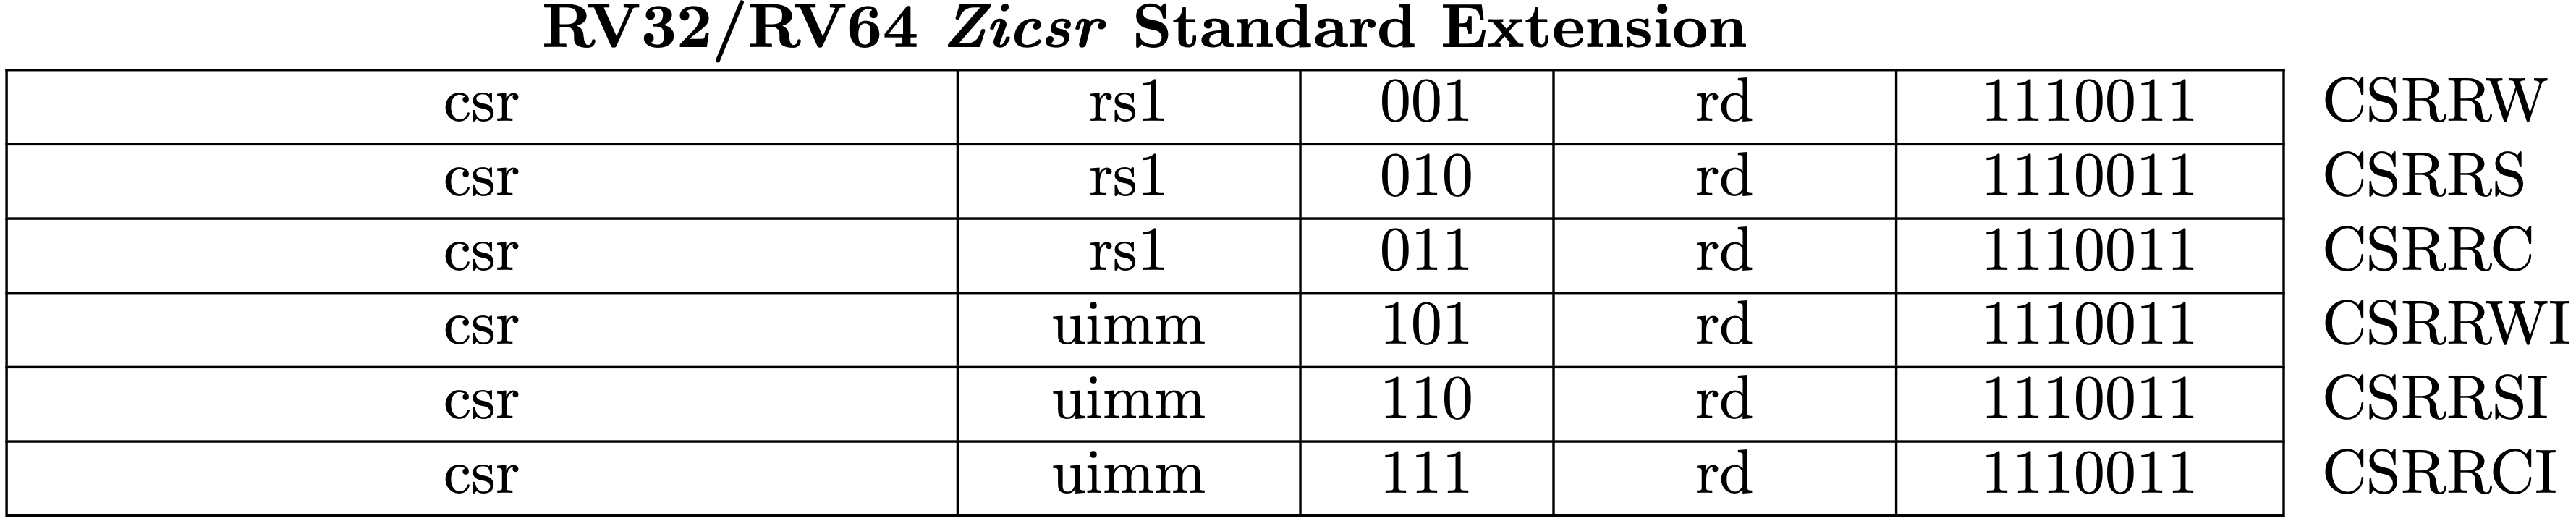 Fig 3.20 RV64Zicsr Instruction Set (Source: RV32/RV64 Zicsr Standard Extension table. in Volume I: Unprivileged ISA)